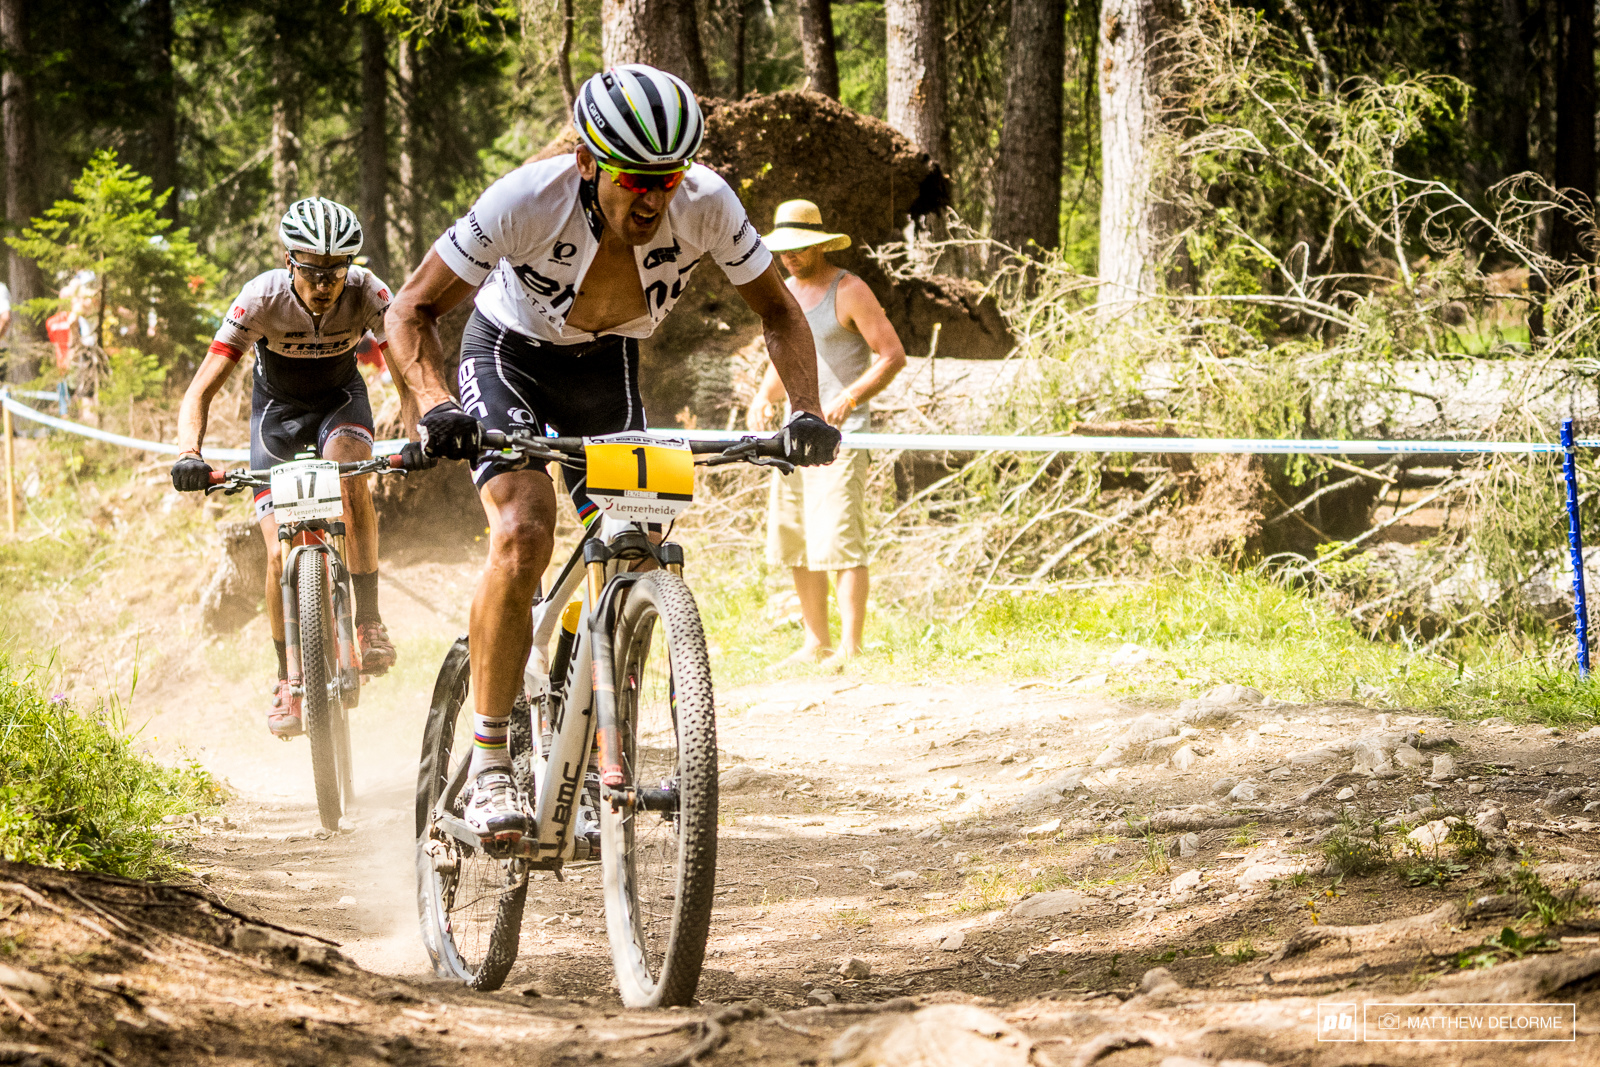 Julien Absalon flatted on lap six that flat landed him on ninth place.